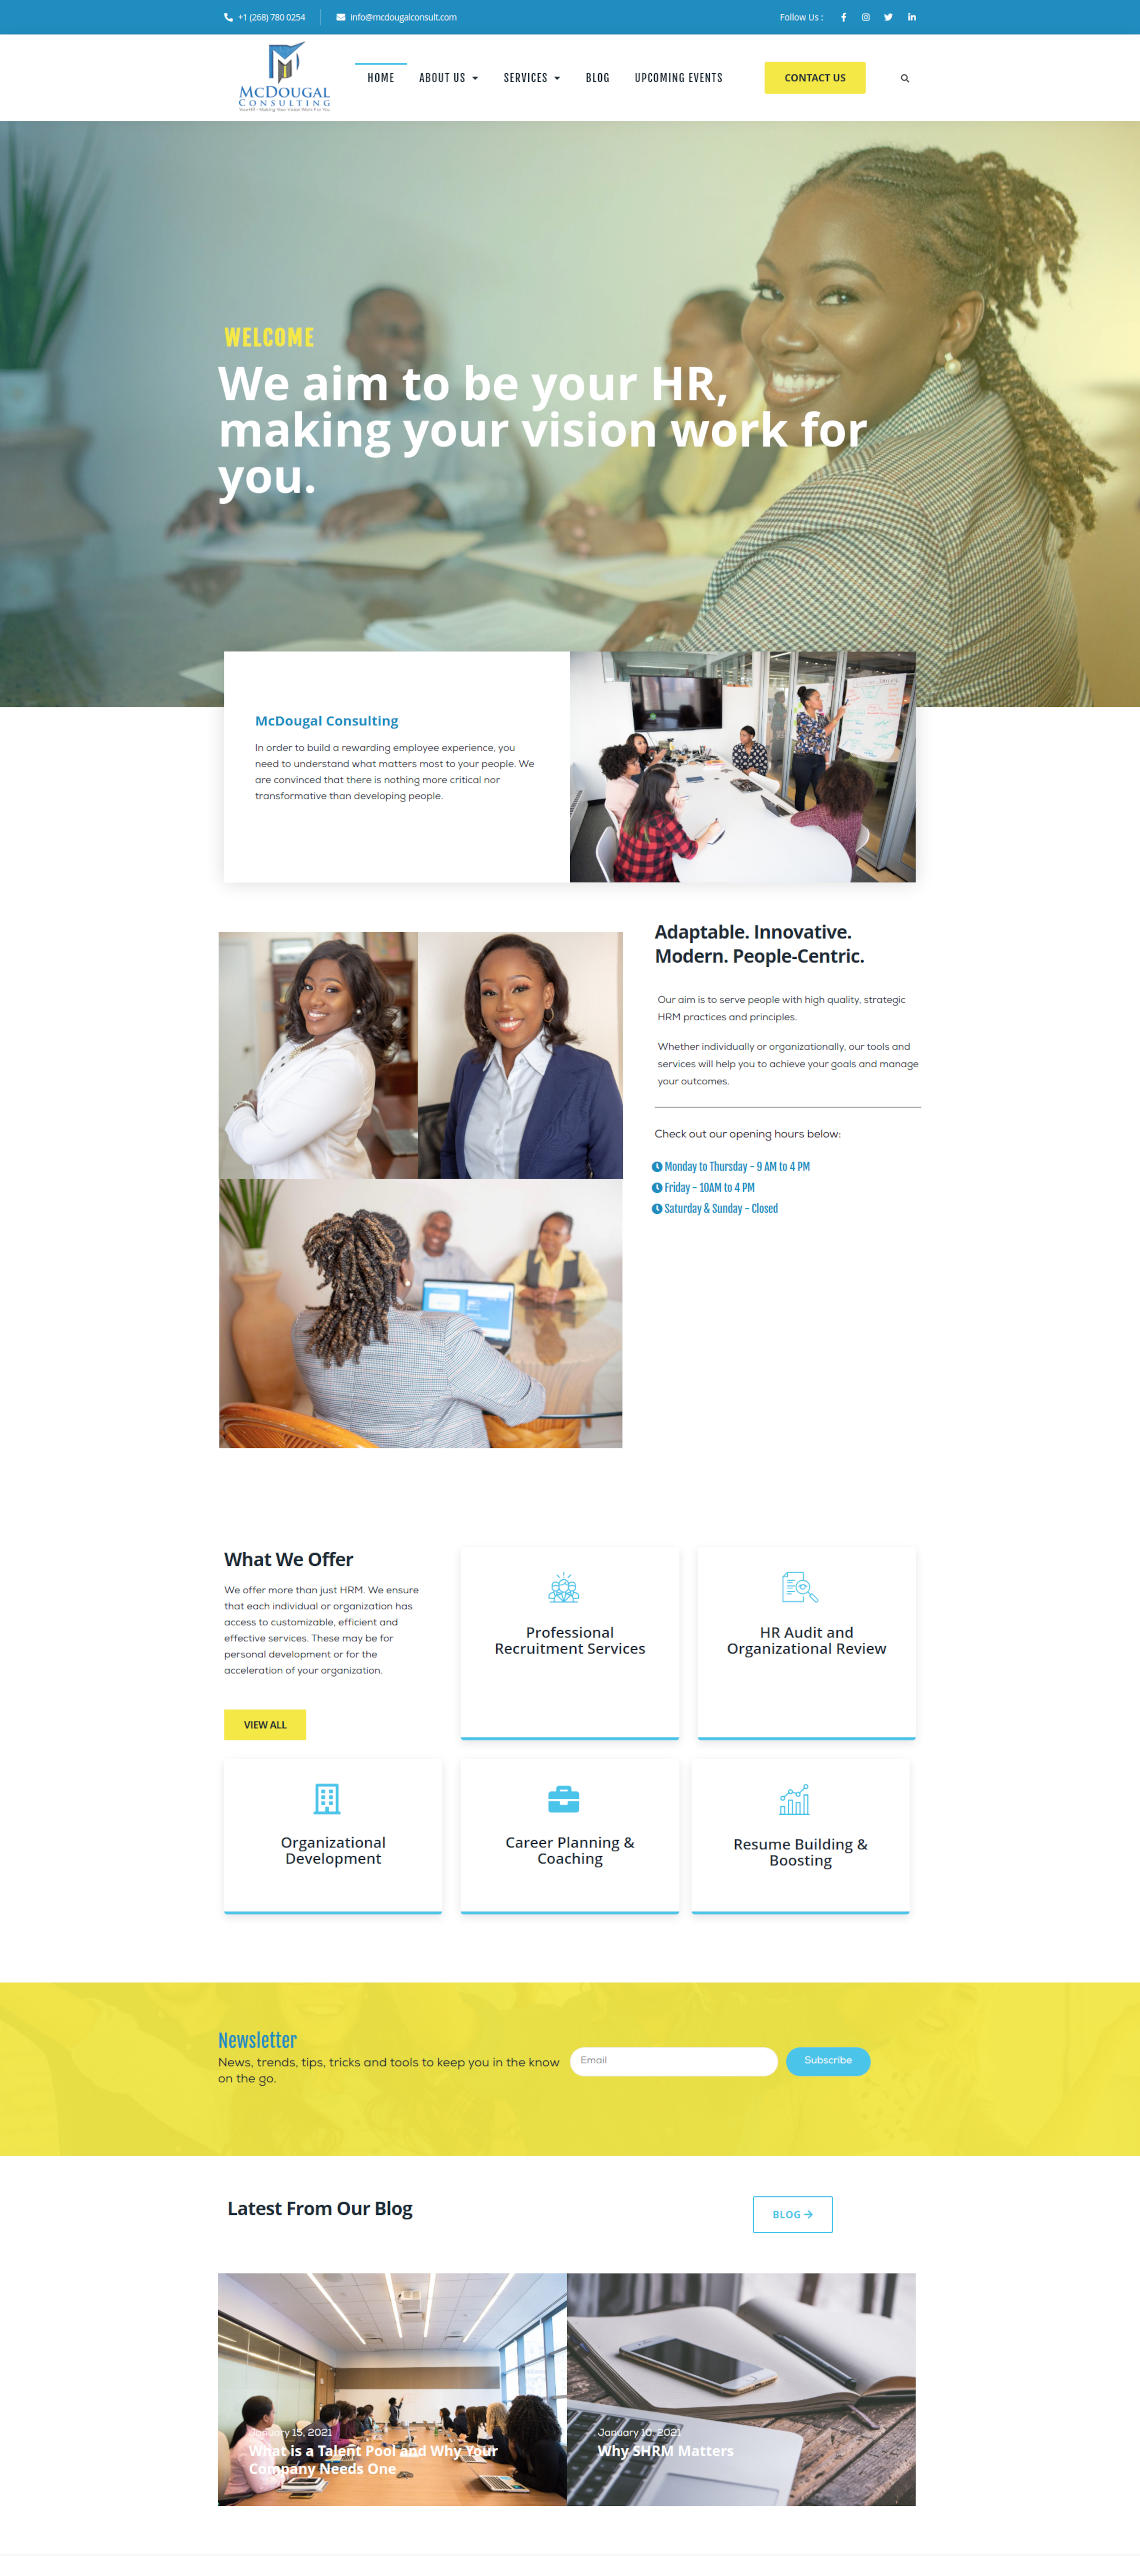 McDougal Consulting website by Anchor Monkey